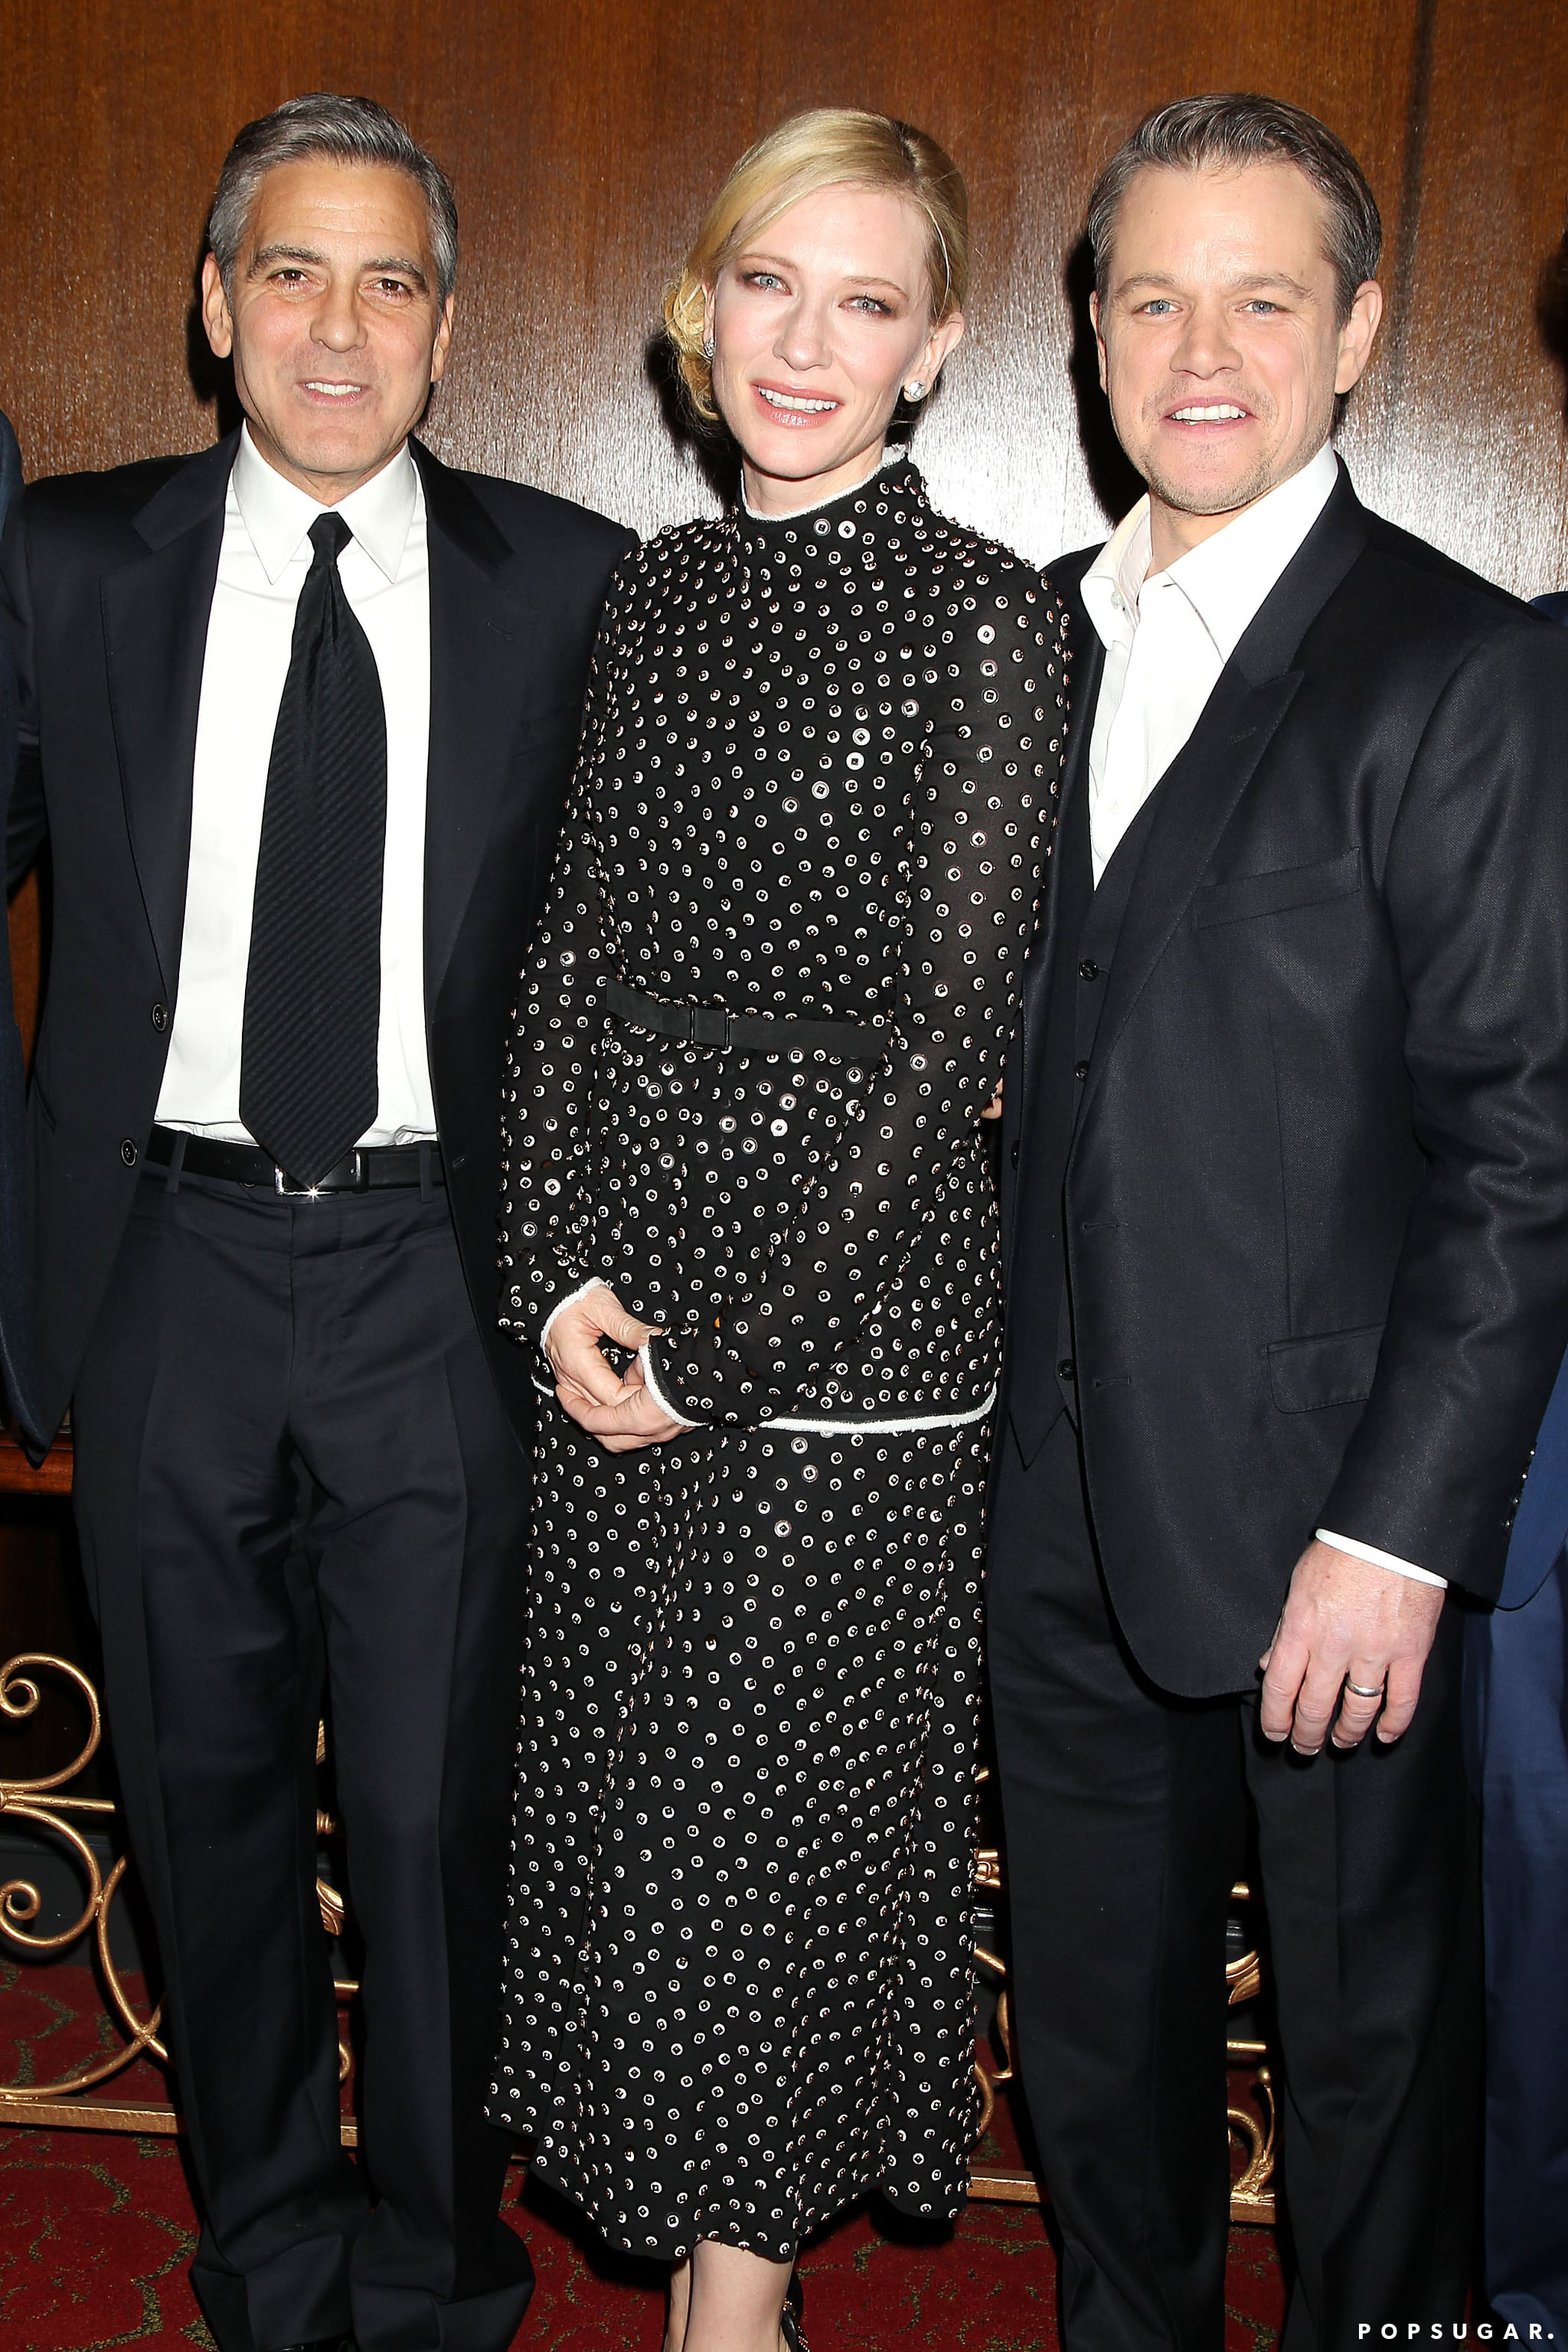 George, Cate, and Matt posed for photos together.